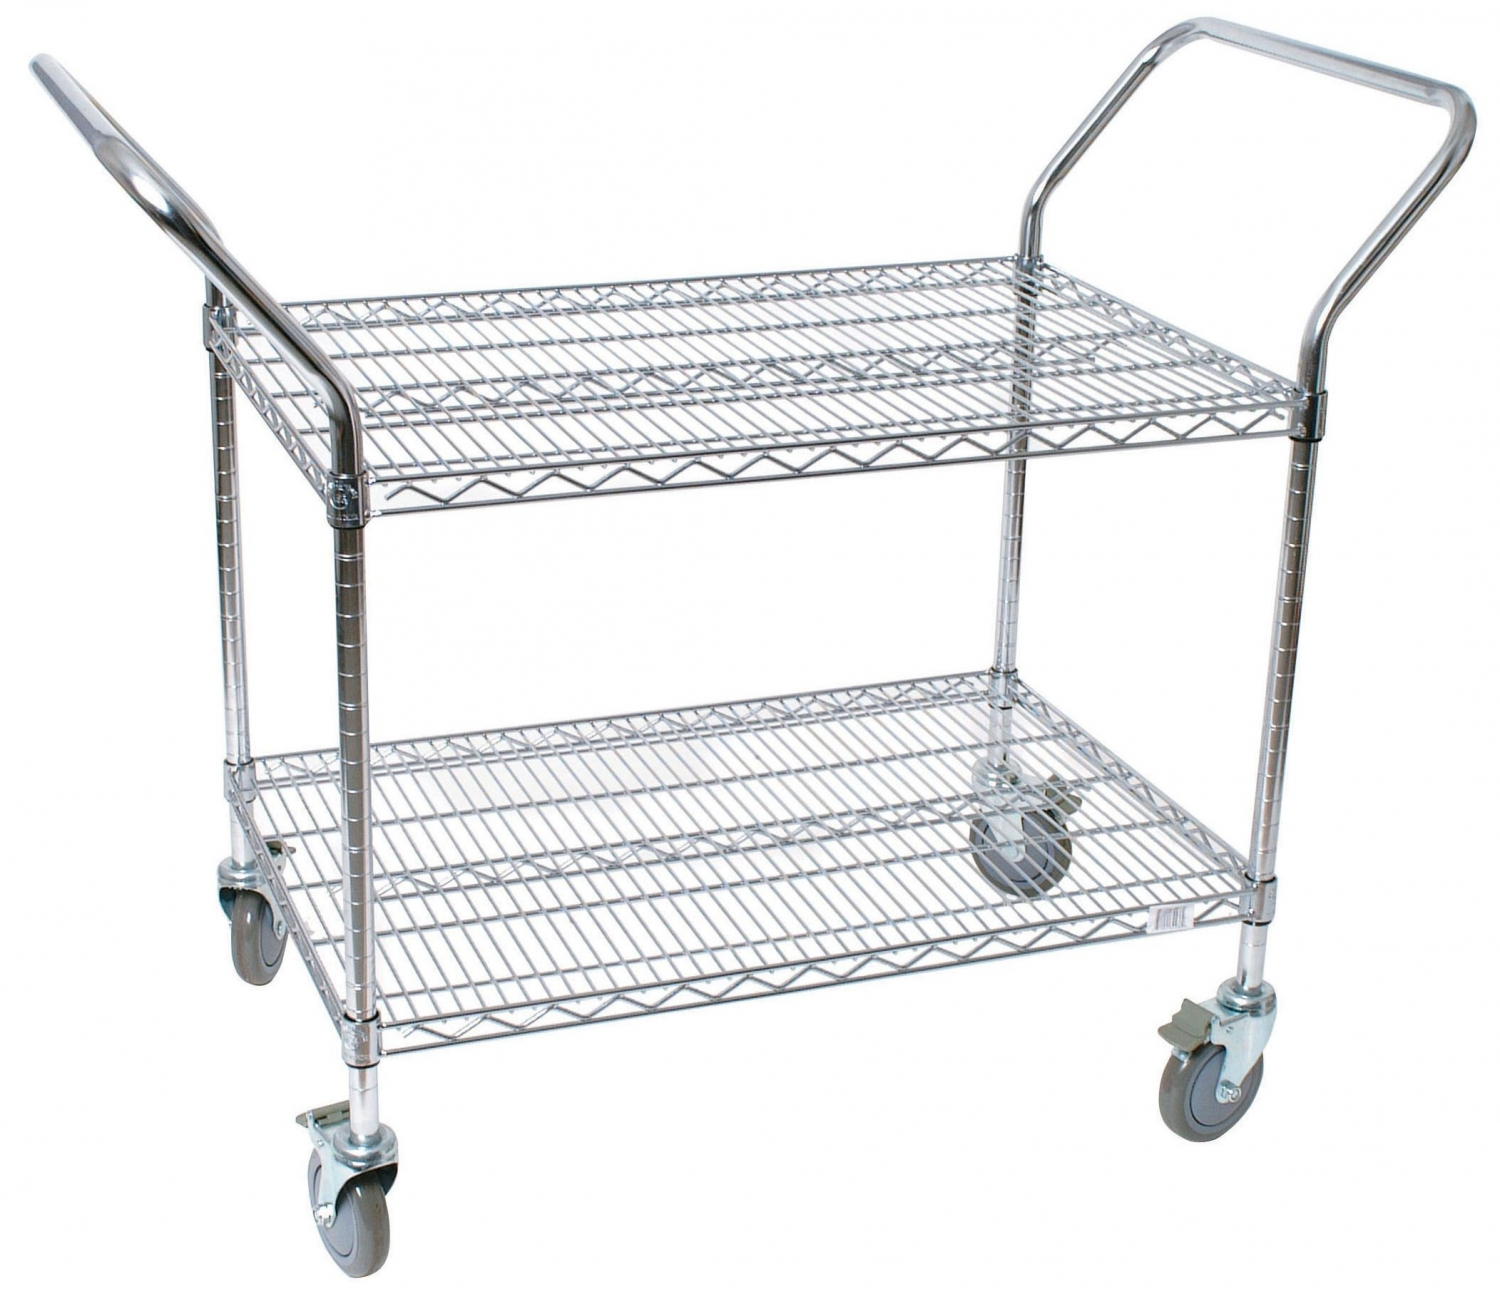 Johnson Rose 32436 Heavy Duty Wire Cart 24